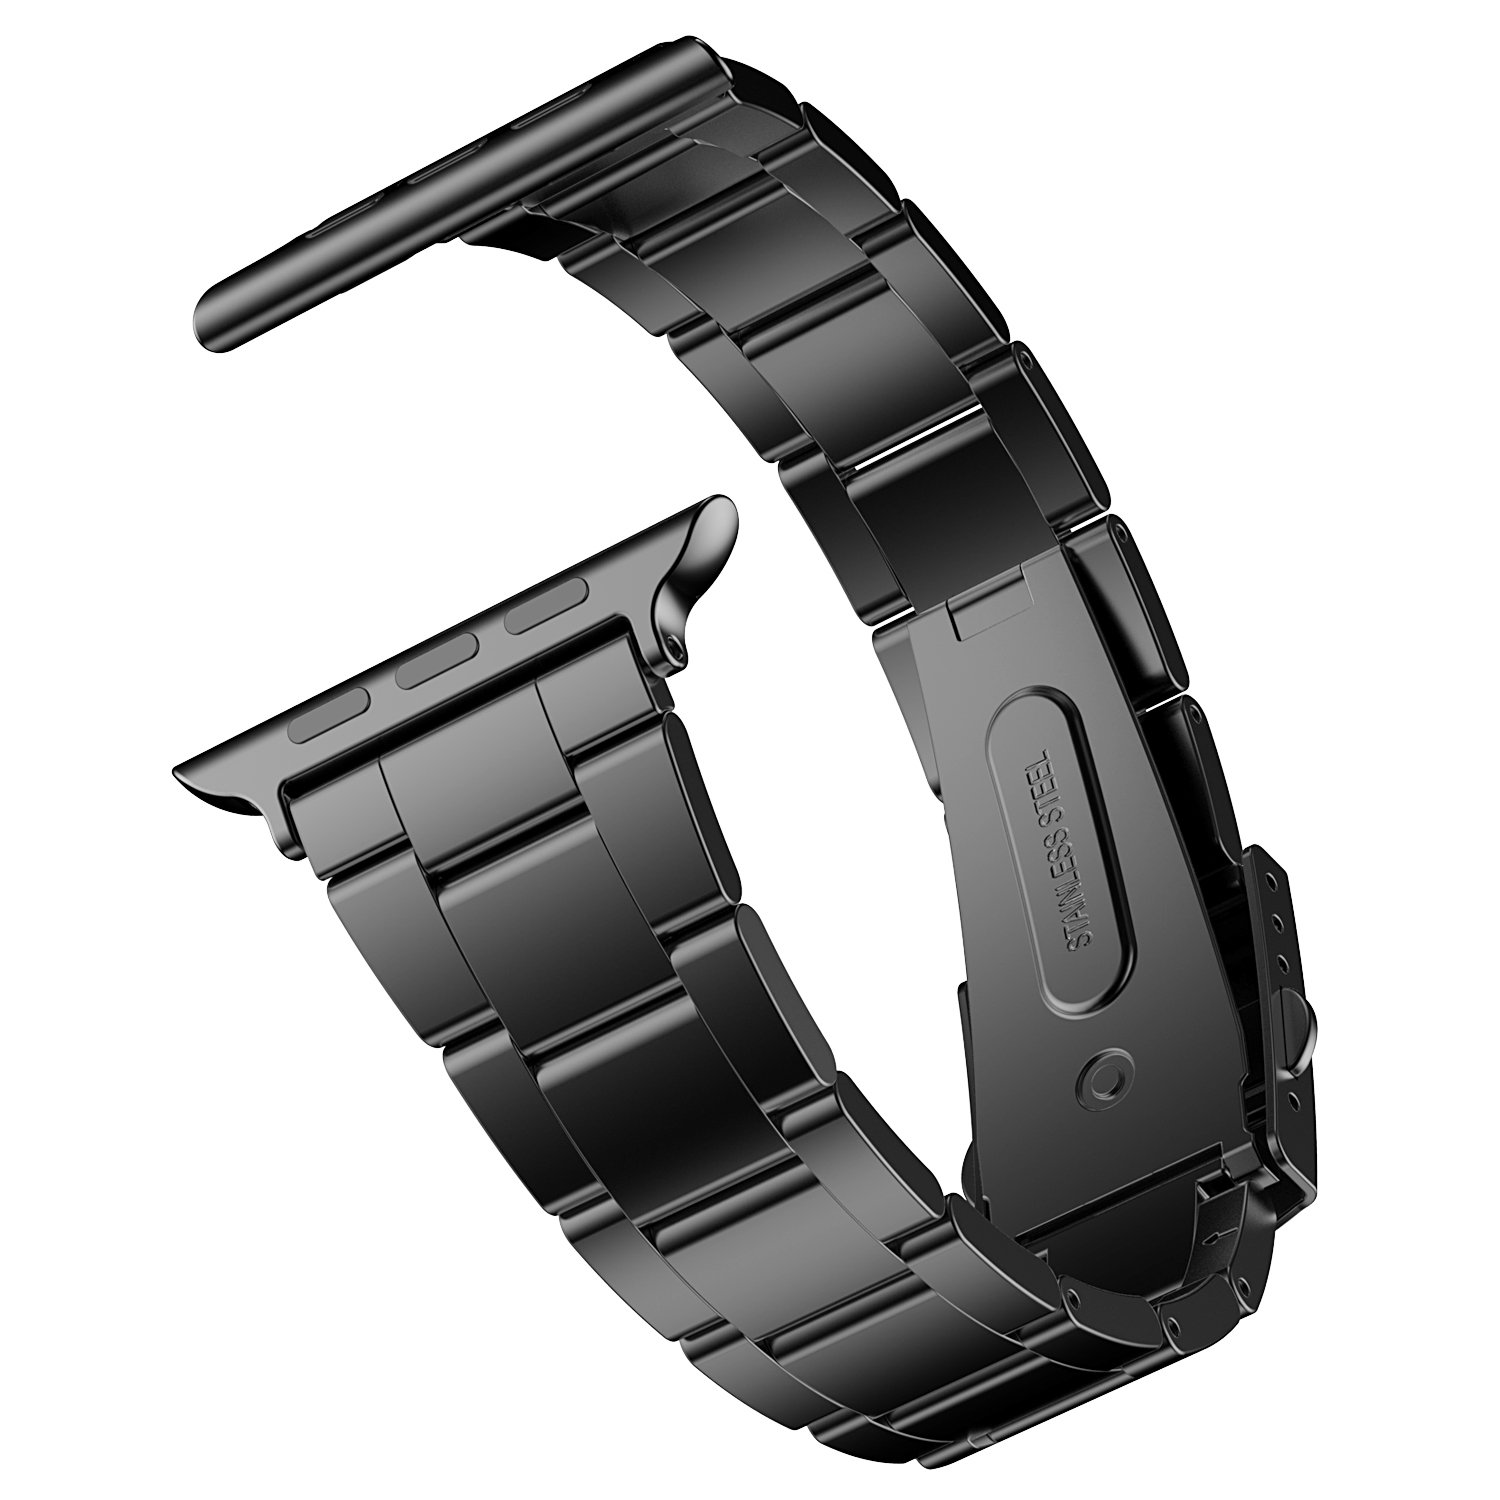 JETech 42mm Stainless Steel Strap Wrist Band Replacement with Metal Clasp for All Apple Watch Models - Black